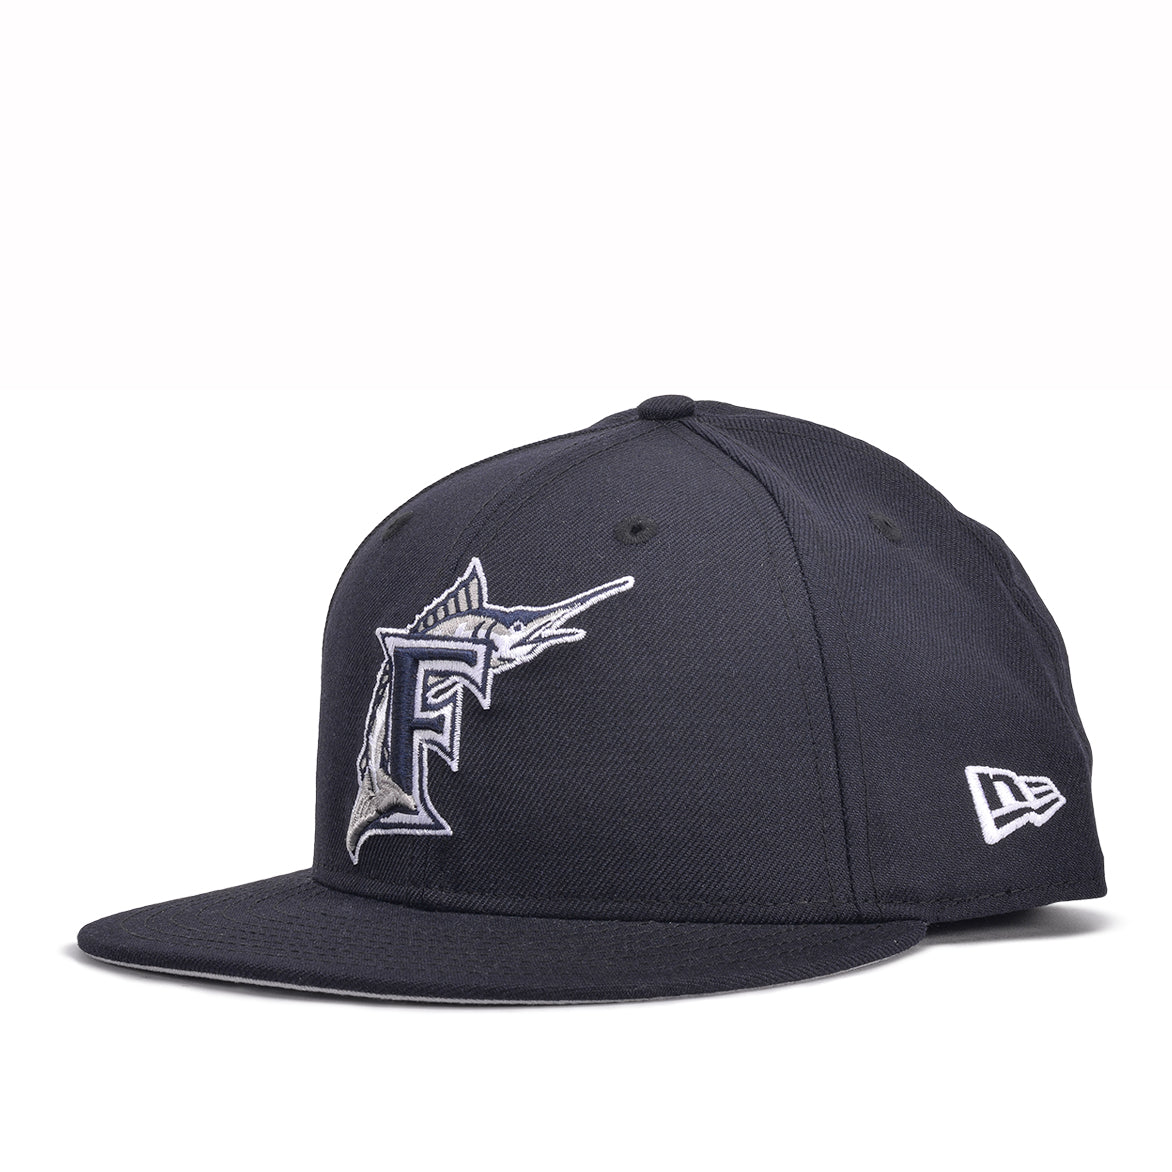 "CITY BLUE x NEW ERA 59FIFTY ""COLOR FLIP"" - MARLINS"